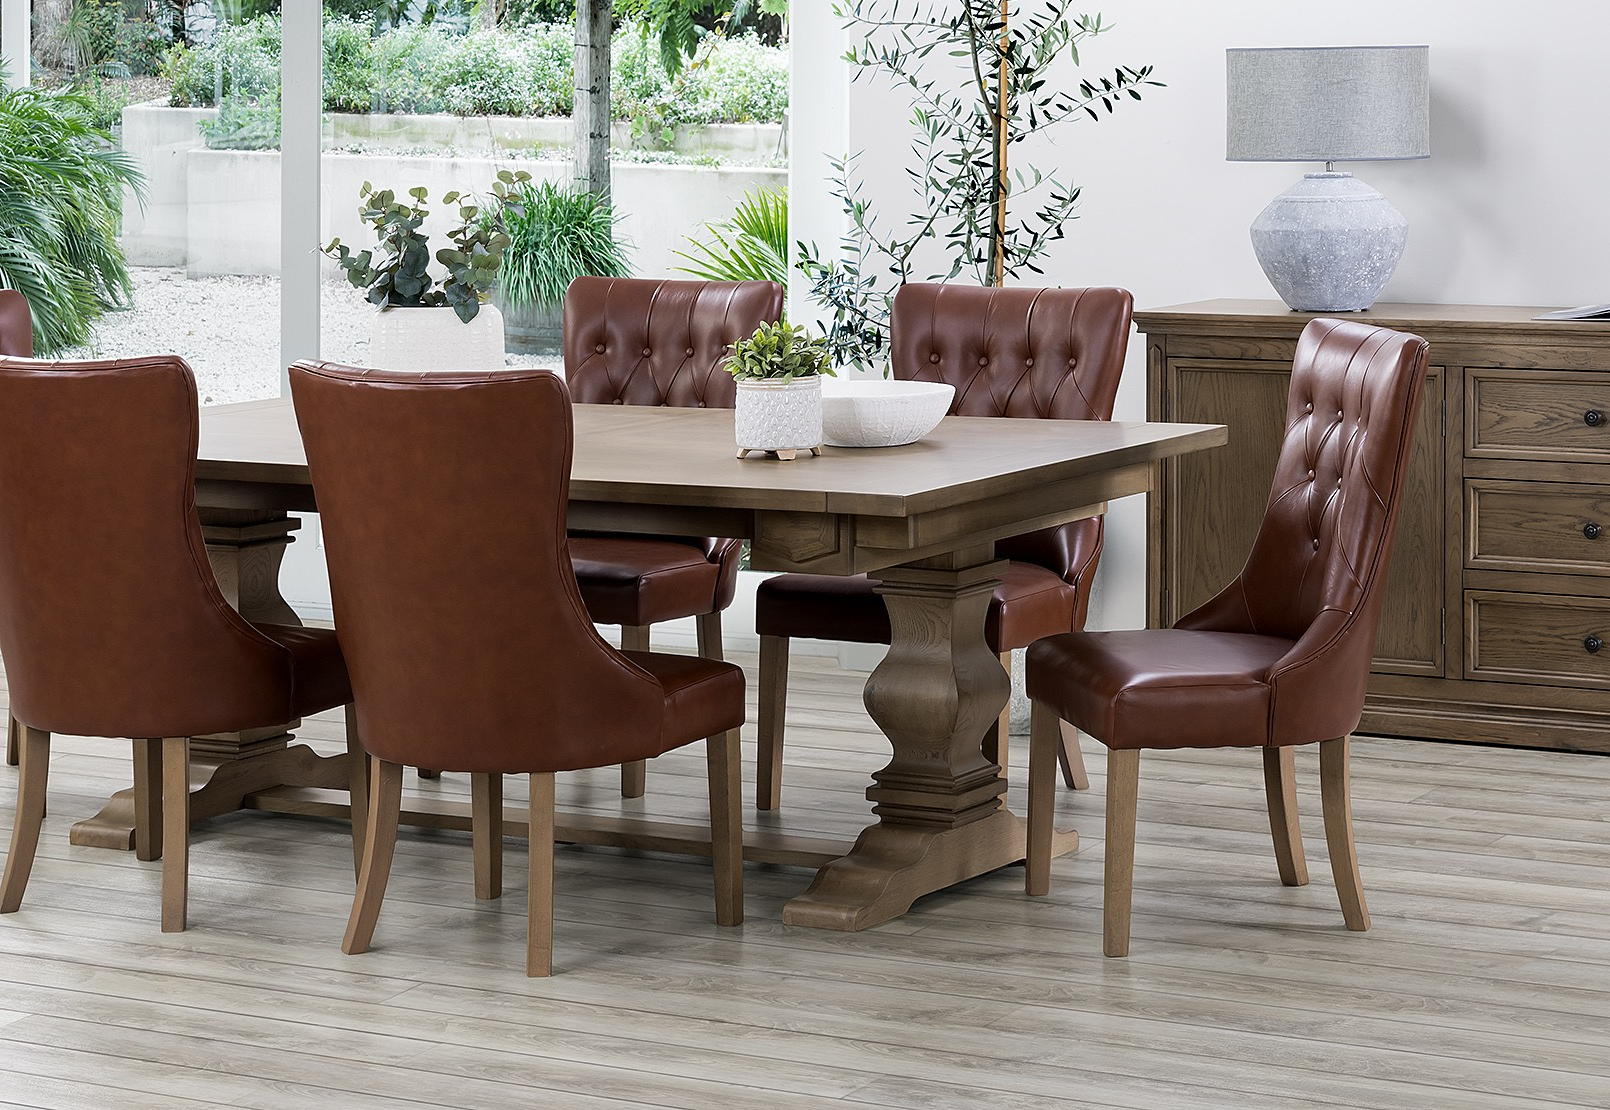 Shepparton Vintage 3 Piece Dining Sets Inside Most Current Dining Tables (View 19 of 20)